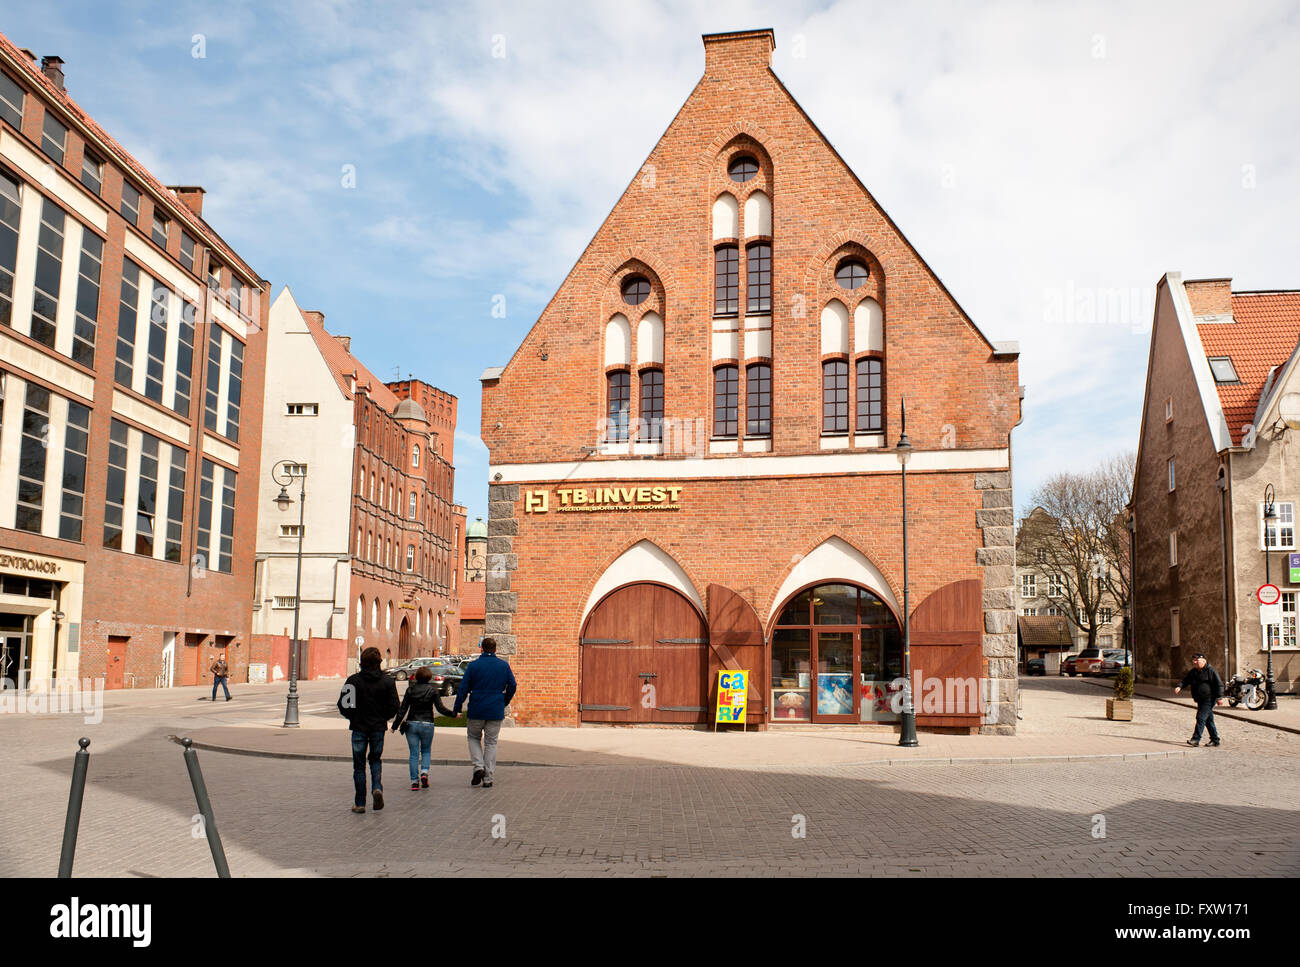 TB Invest firm in Gdansk, Old Town, red bricks building at popular tourist place in Poland, Europe, sightseeing - Stock Image